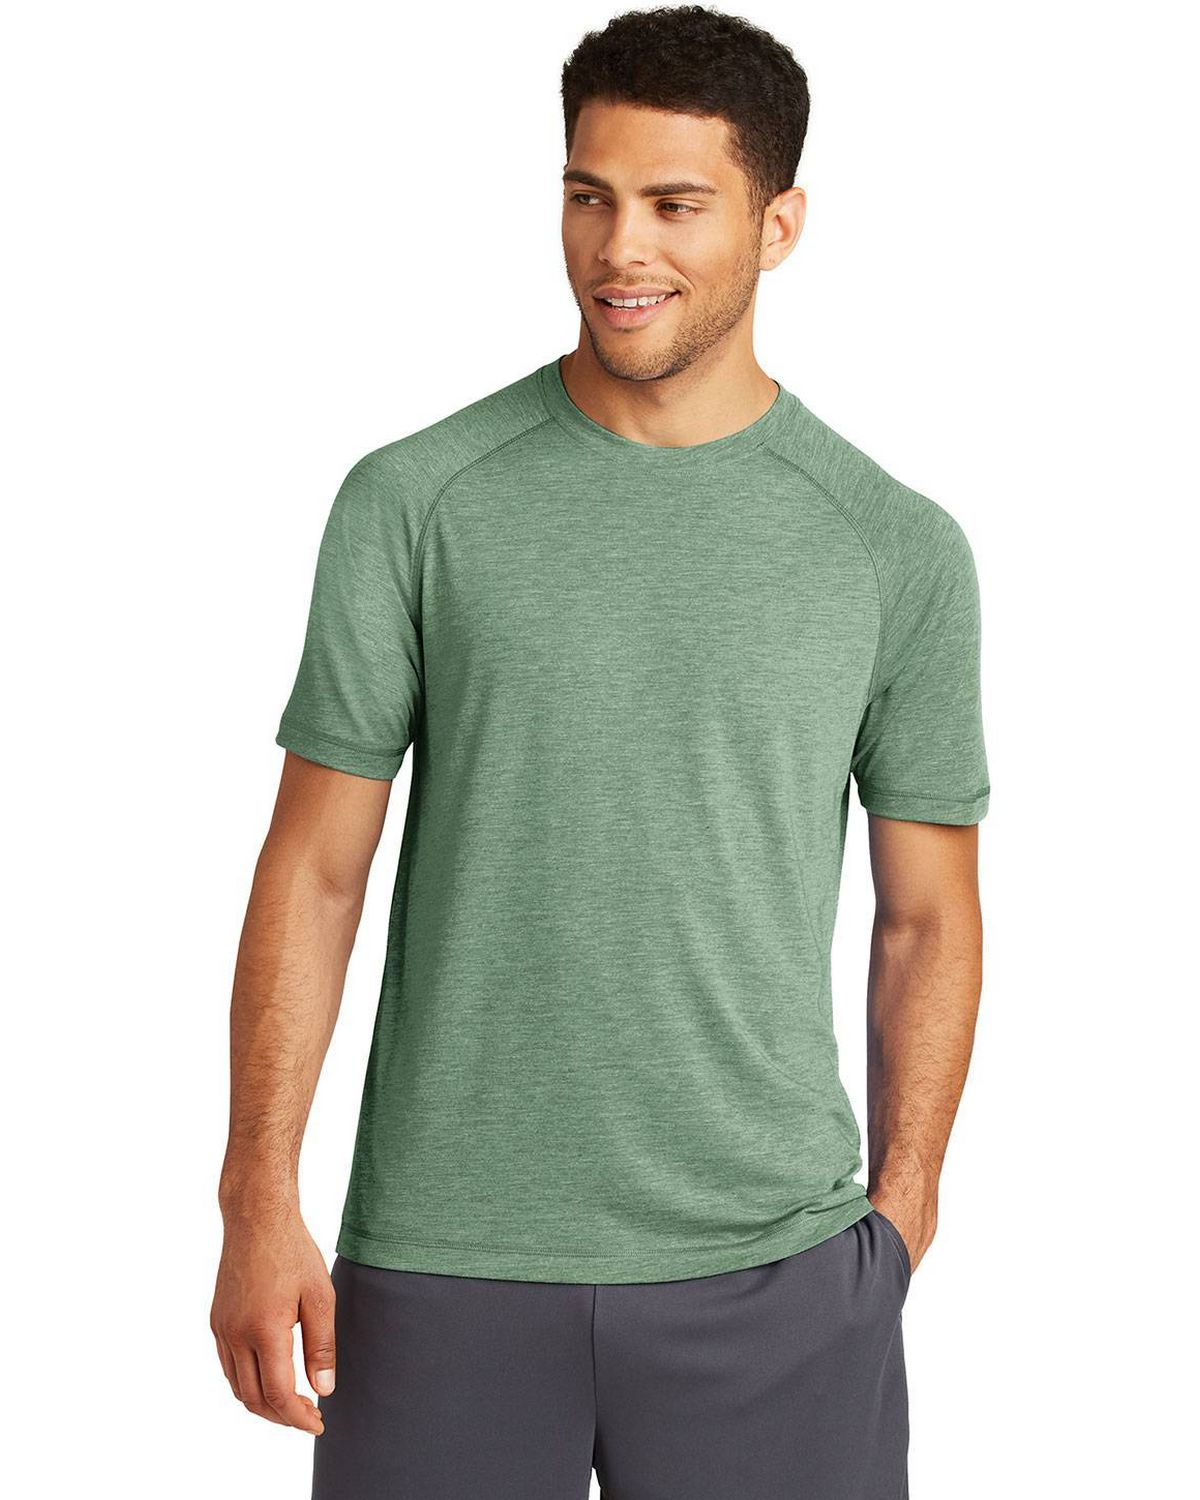 Sport-Tek ST400 Mens Posi Charge Tri-Blend Wicking Raglan T-shirt